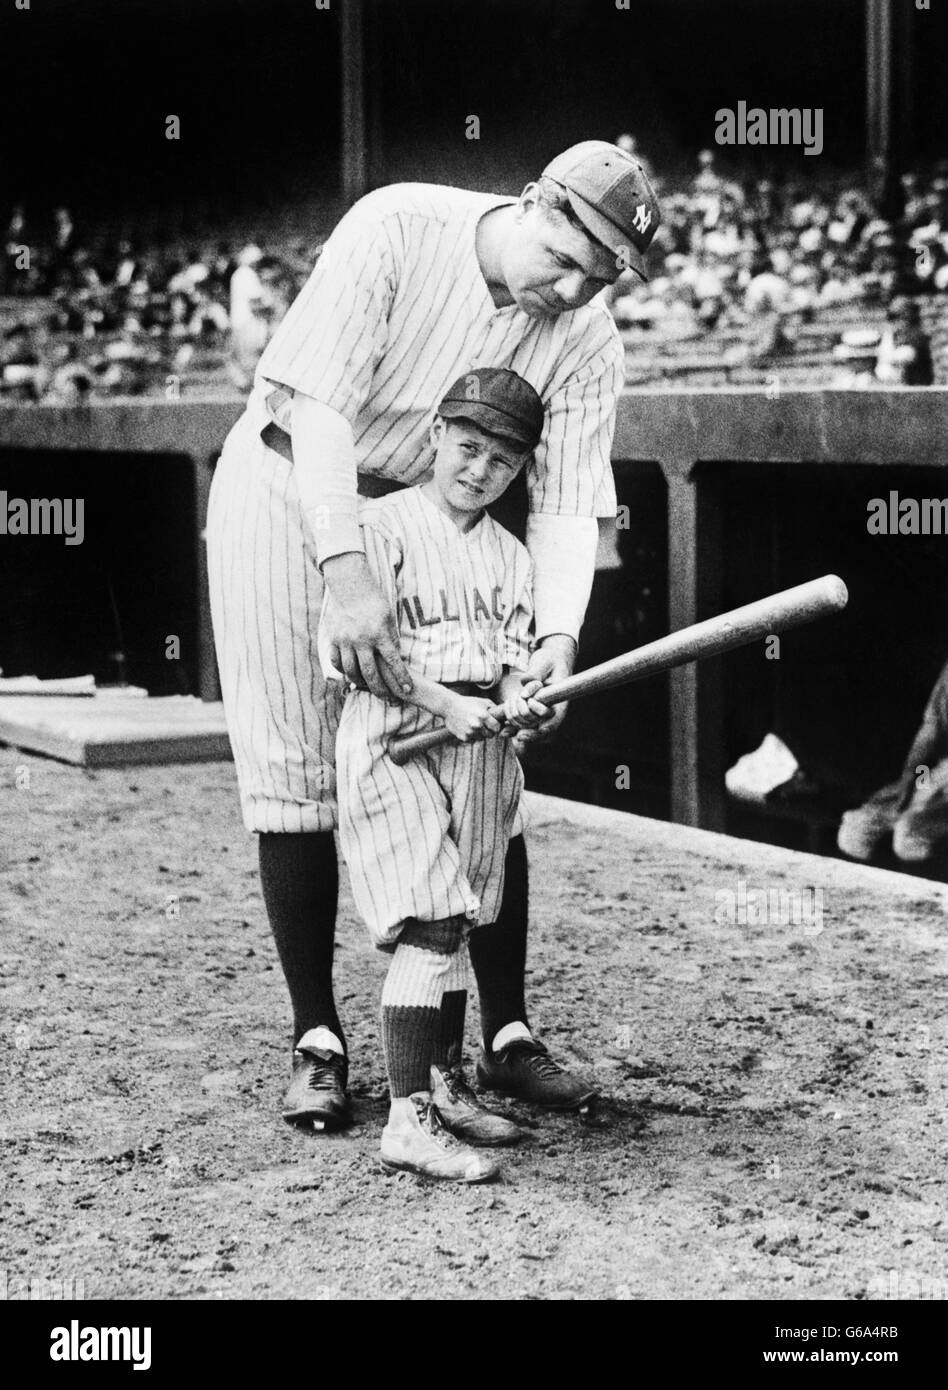 1930s BASEBALL PLAYER BABE RUTH COACHING YOUNG BOY HOW TO SWING BAT ON BASEBALL FIELD - Stock Image